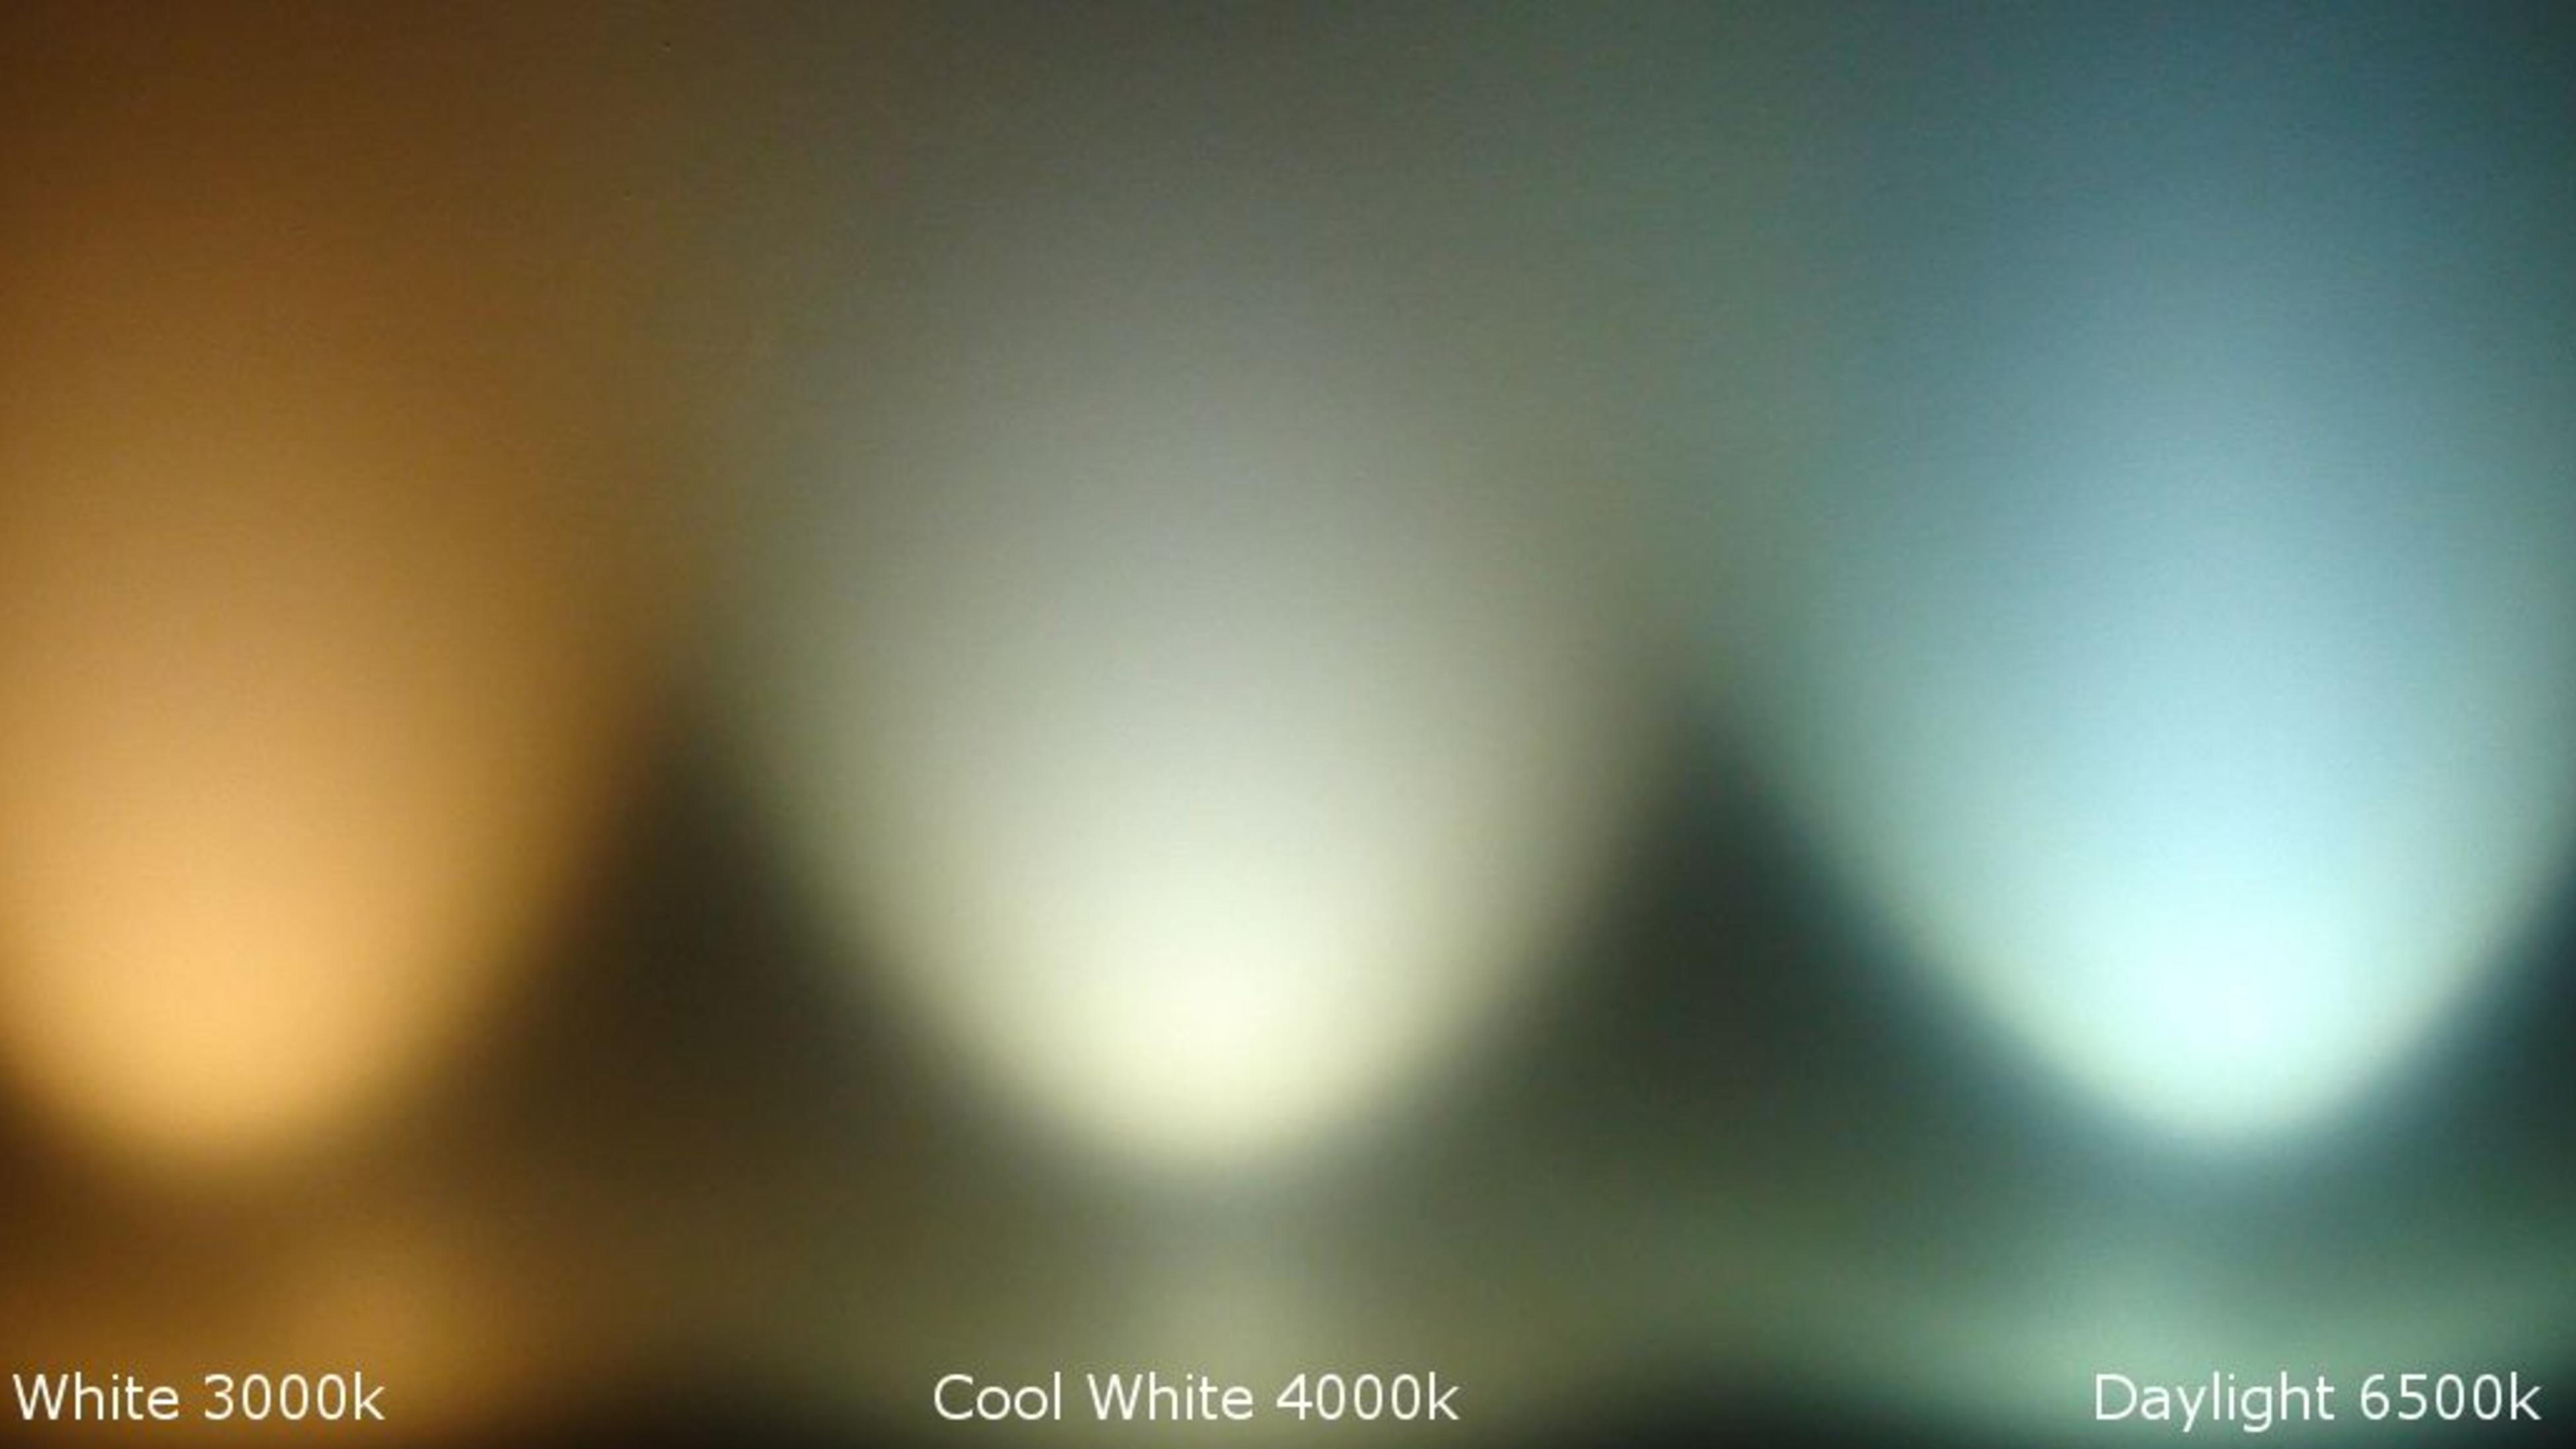 A range of warm, cool and daylight bulb light ranges in an abstract image.